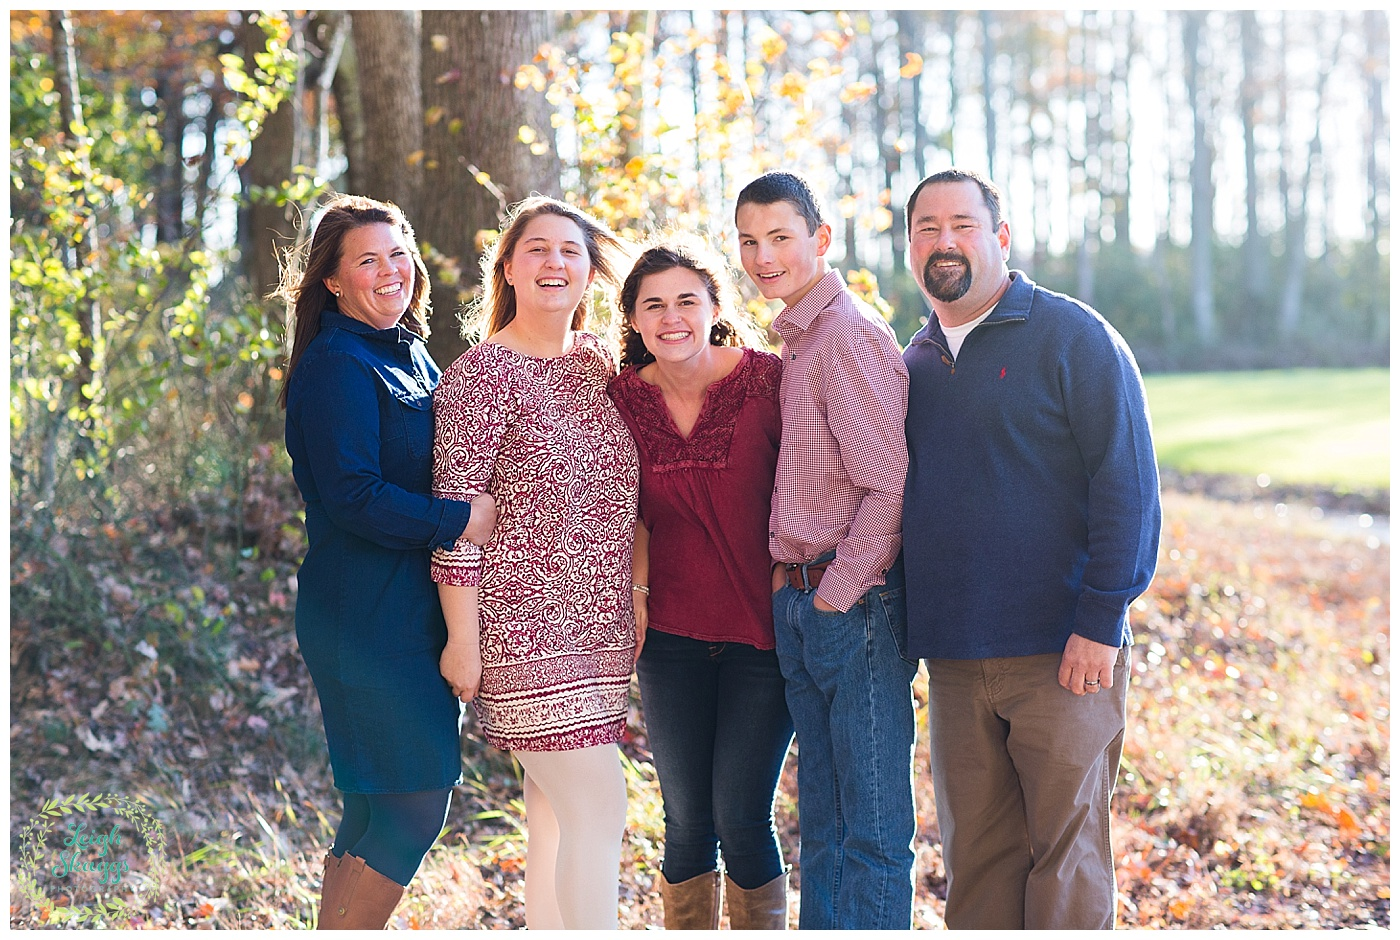 The Gentry Family  Family Portrait Photography